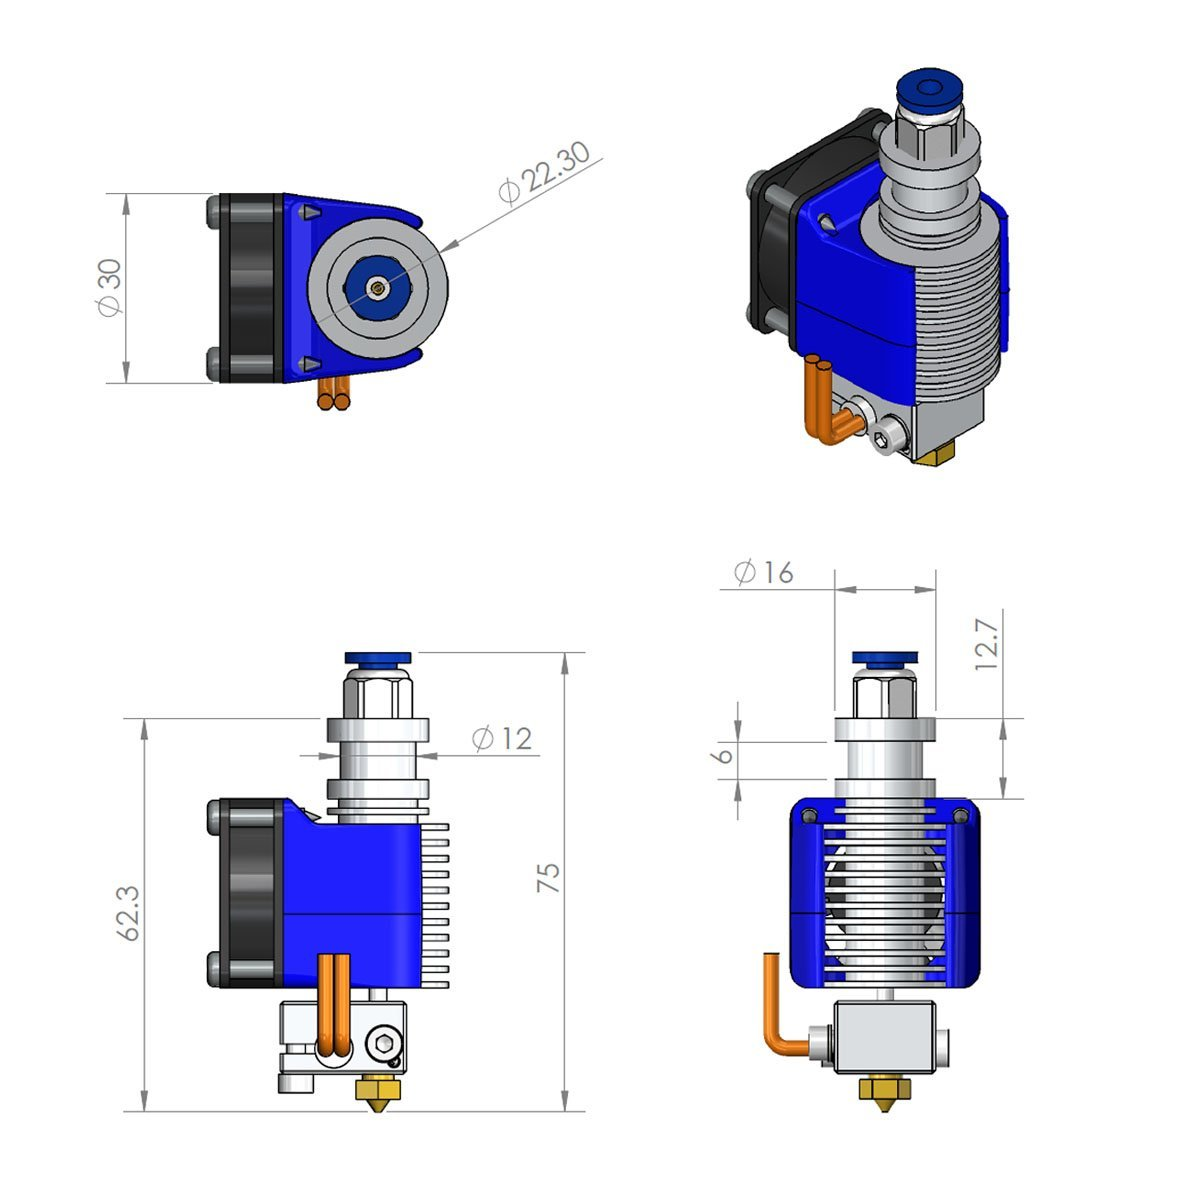 Image 5 - All Metal V6 Bowden Extruder Hotend For 3D Printer   24V /1.75mm Filament / 0.4mm Nozzle-in 3D Printer Parts & Accessories from Computer & Office